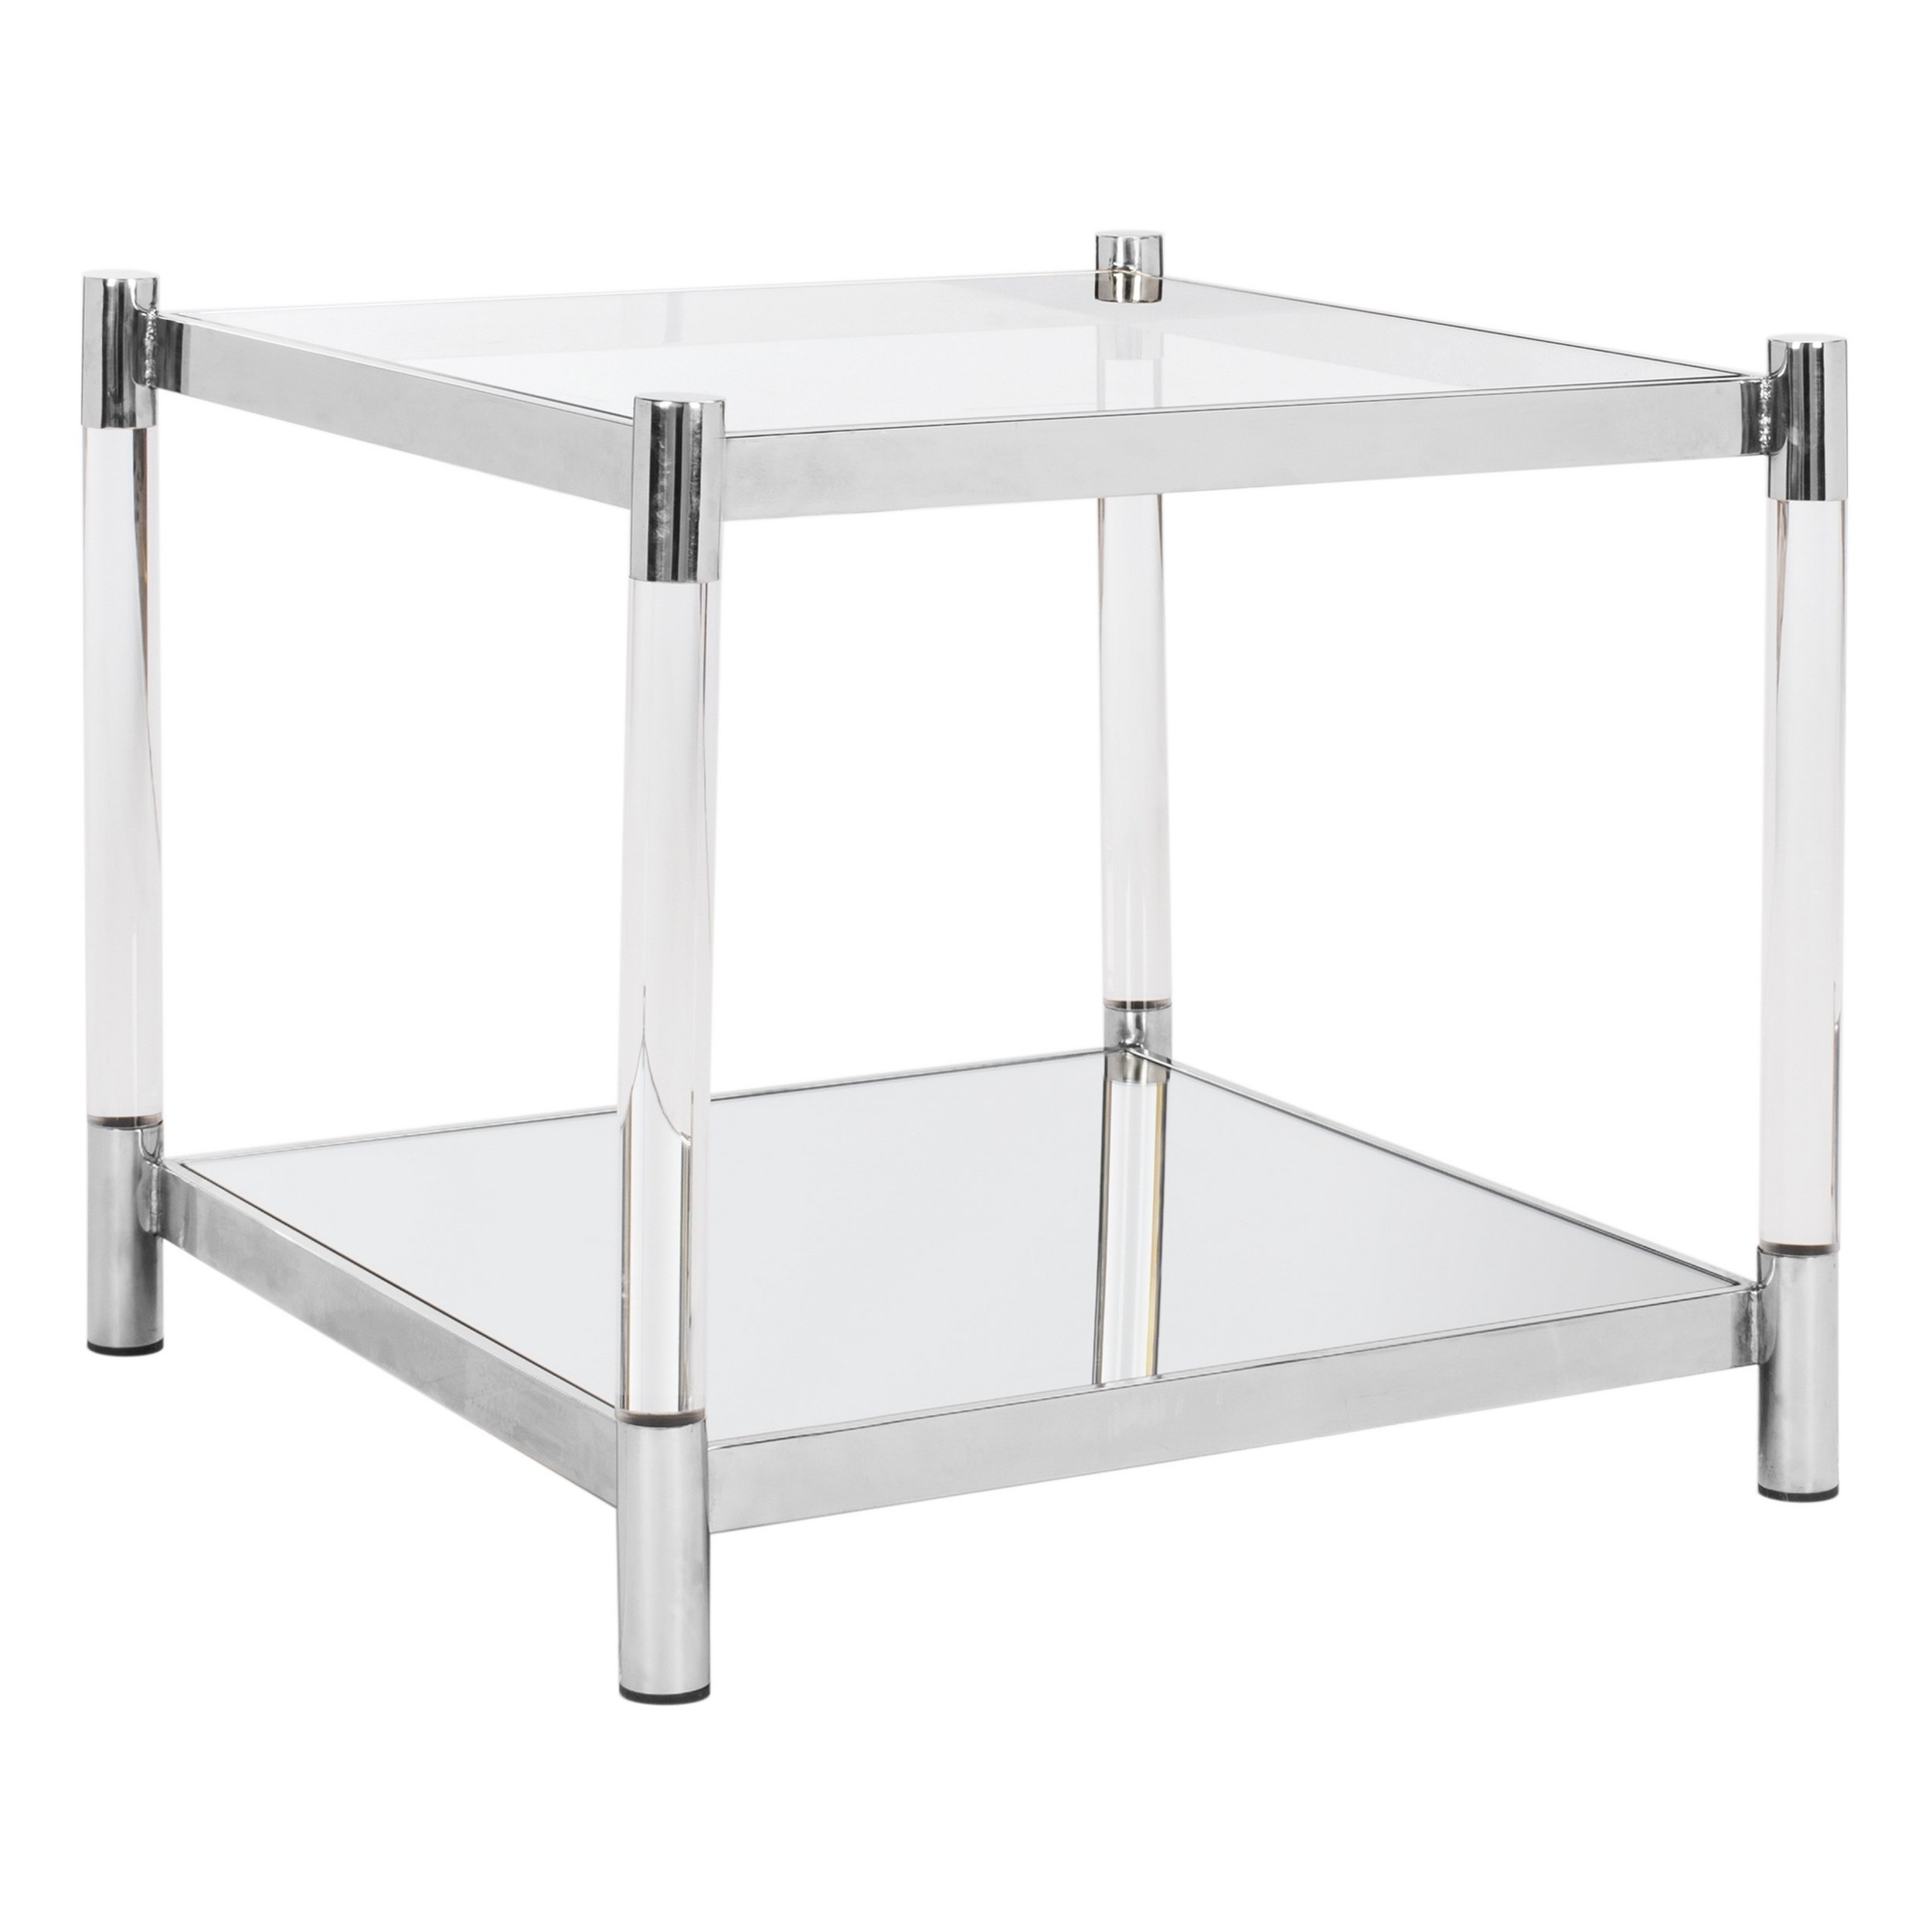 safavieh couture high line collection shayla acrylic silver accent table black free shipping today round marble coffee target three legged bathroom fittings decorative tables